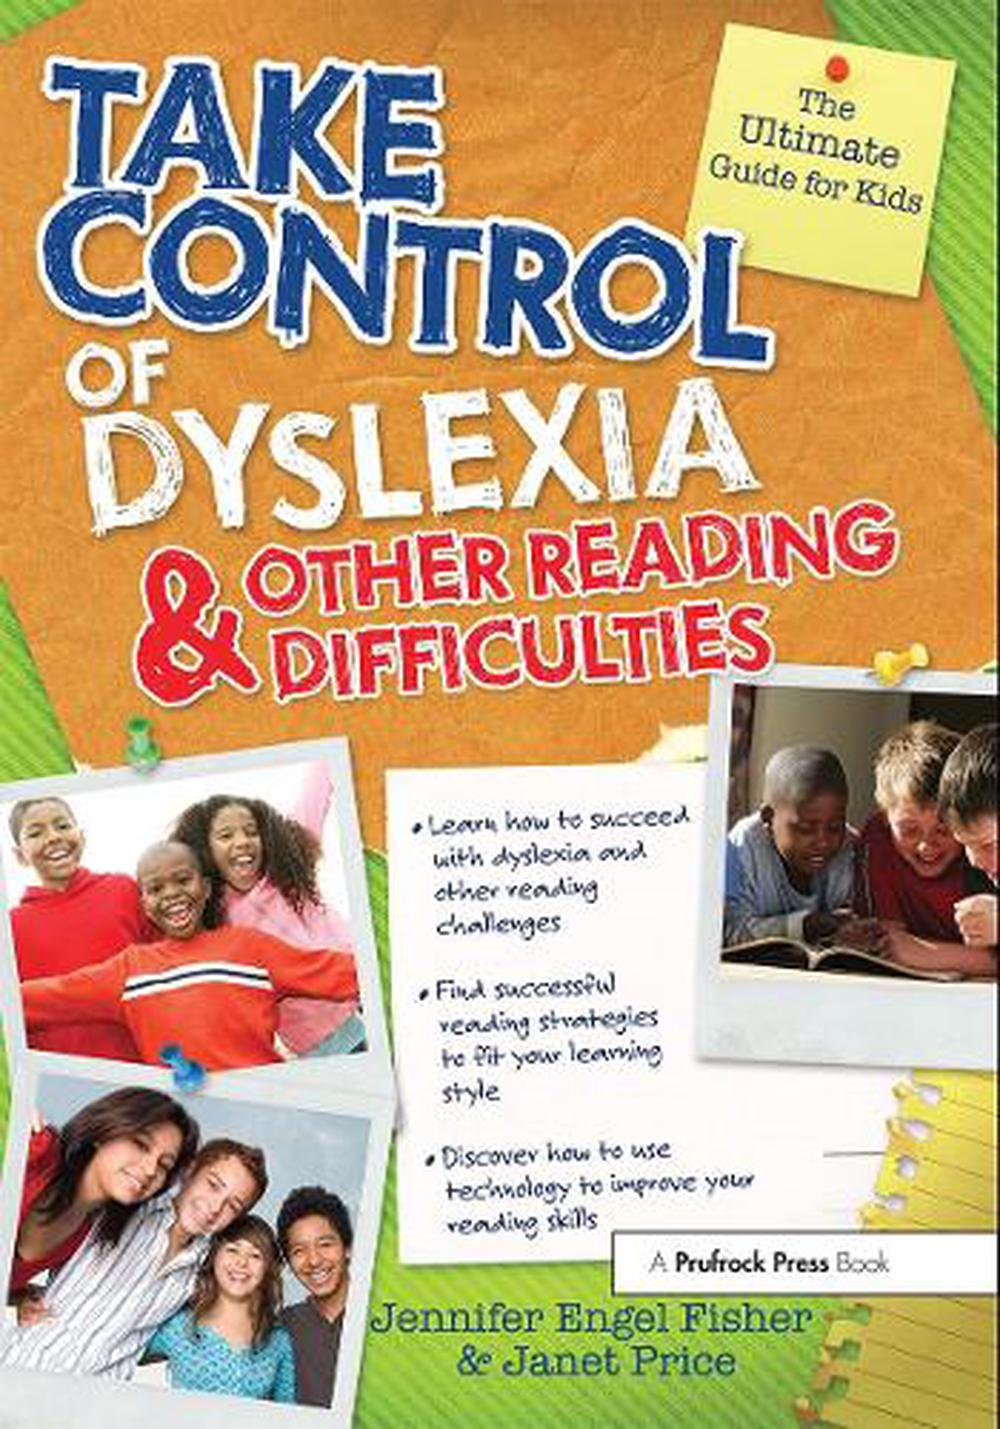 Take Control of Dyslexia and Other Reading Difficulties